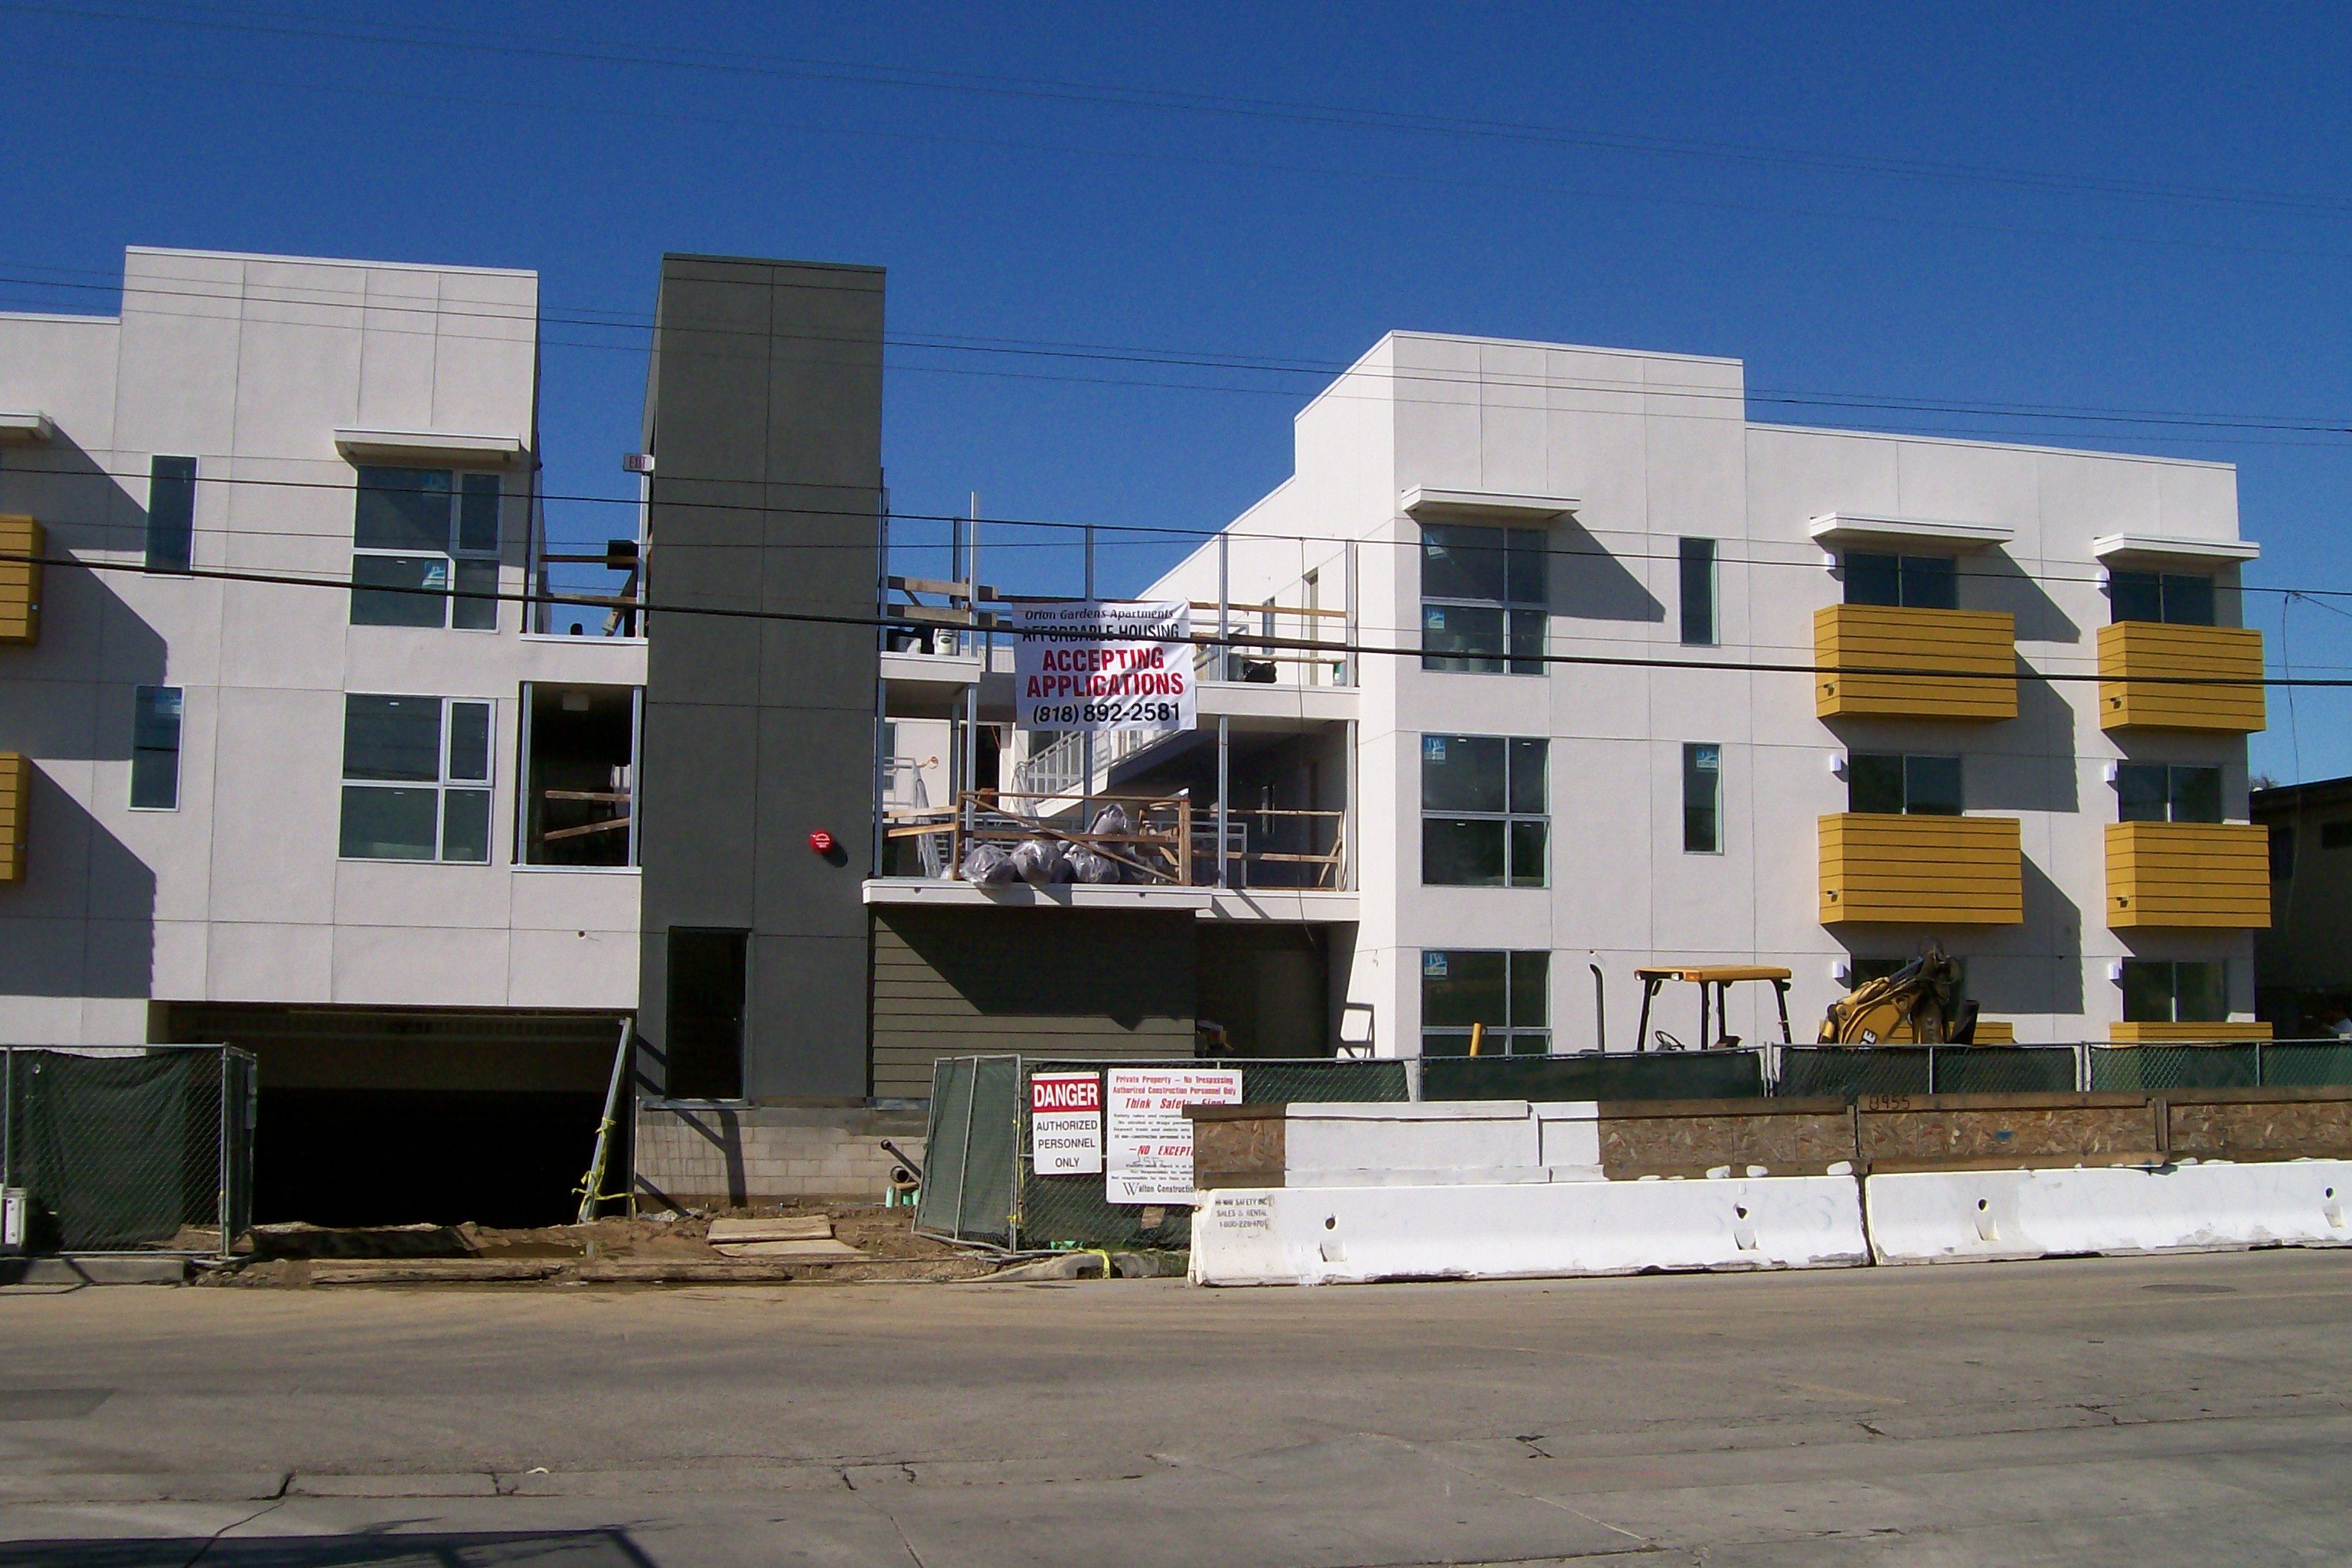 Front view of a white half way in construction building, mustard color balconies, yellow bulldozer, Affordable Housing sign Accepting apllications big white sign hanging, chicken wire fence with Danger sign.